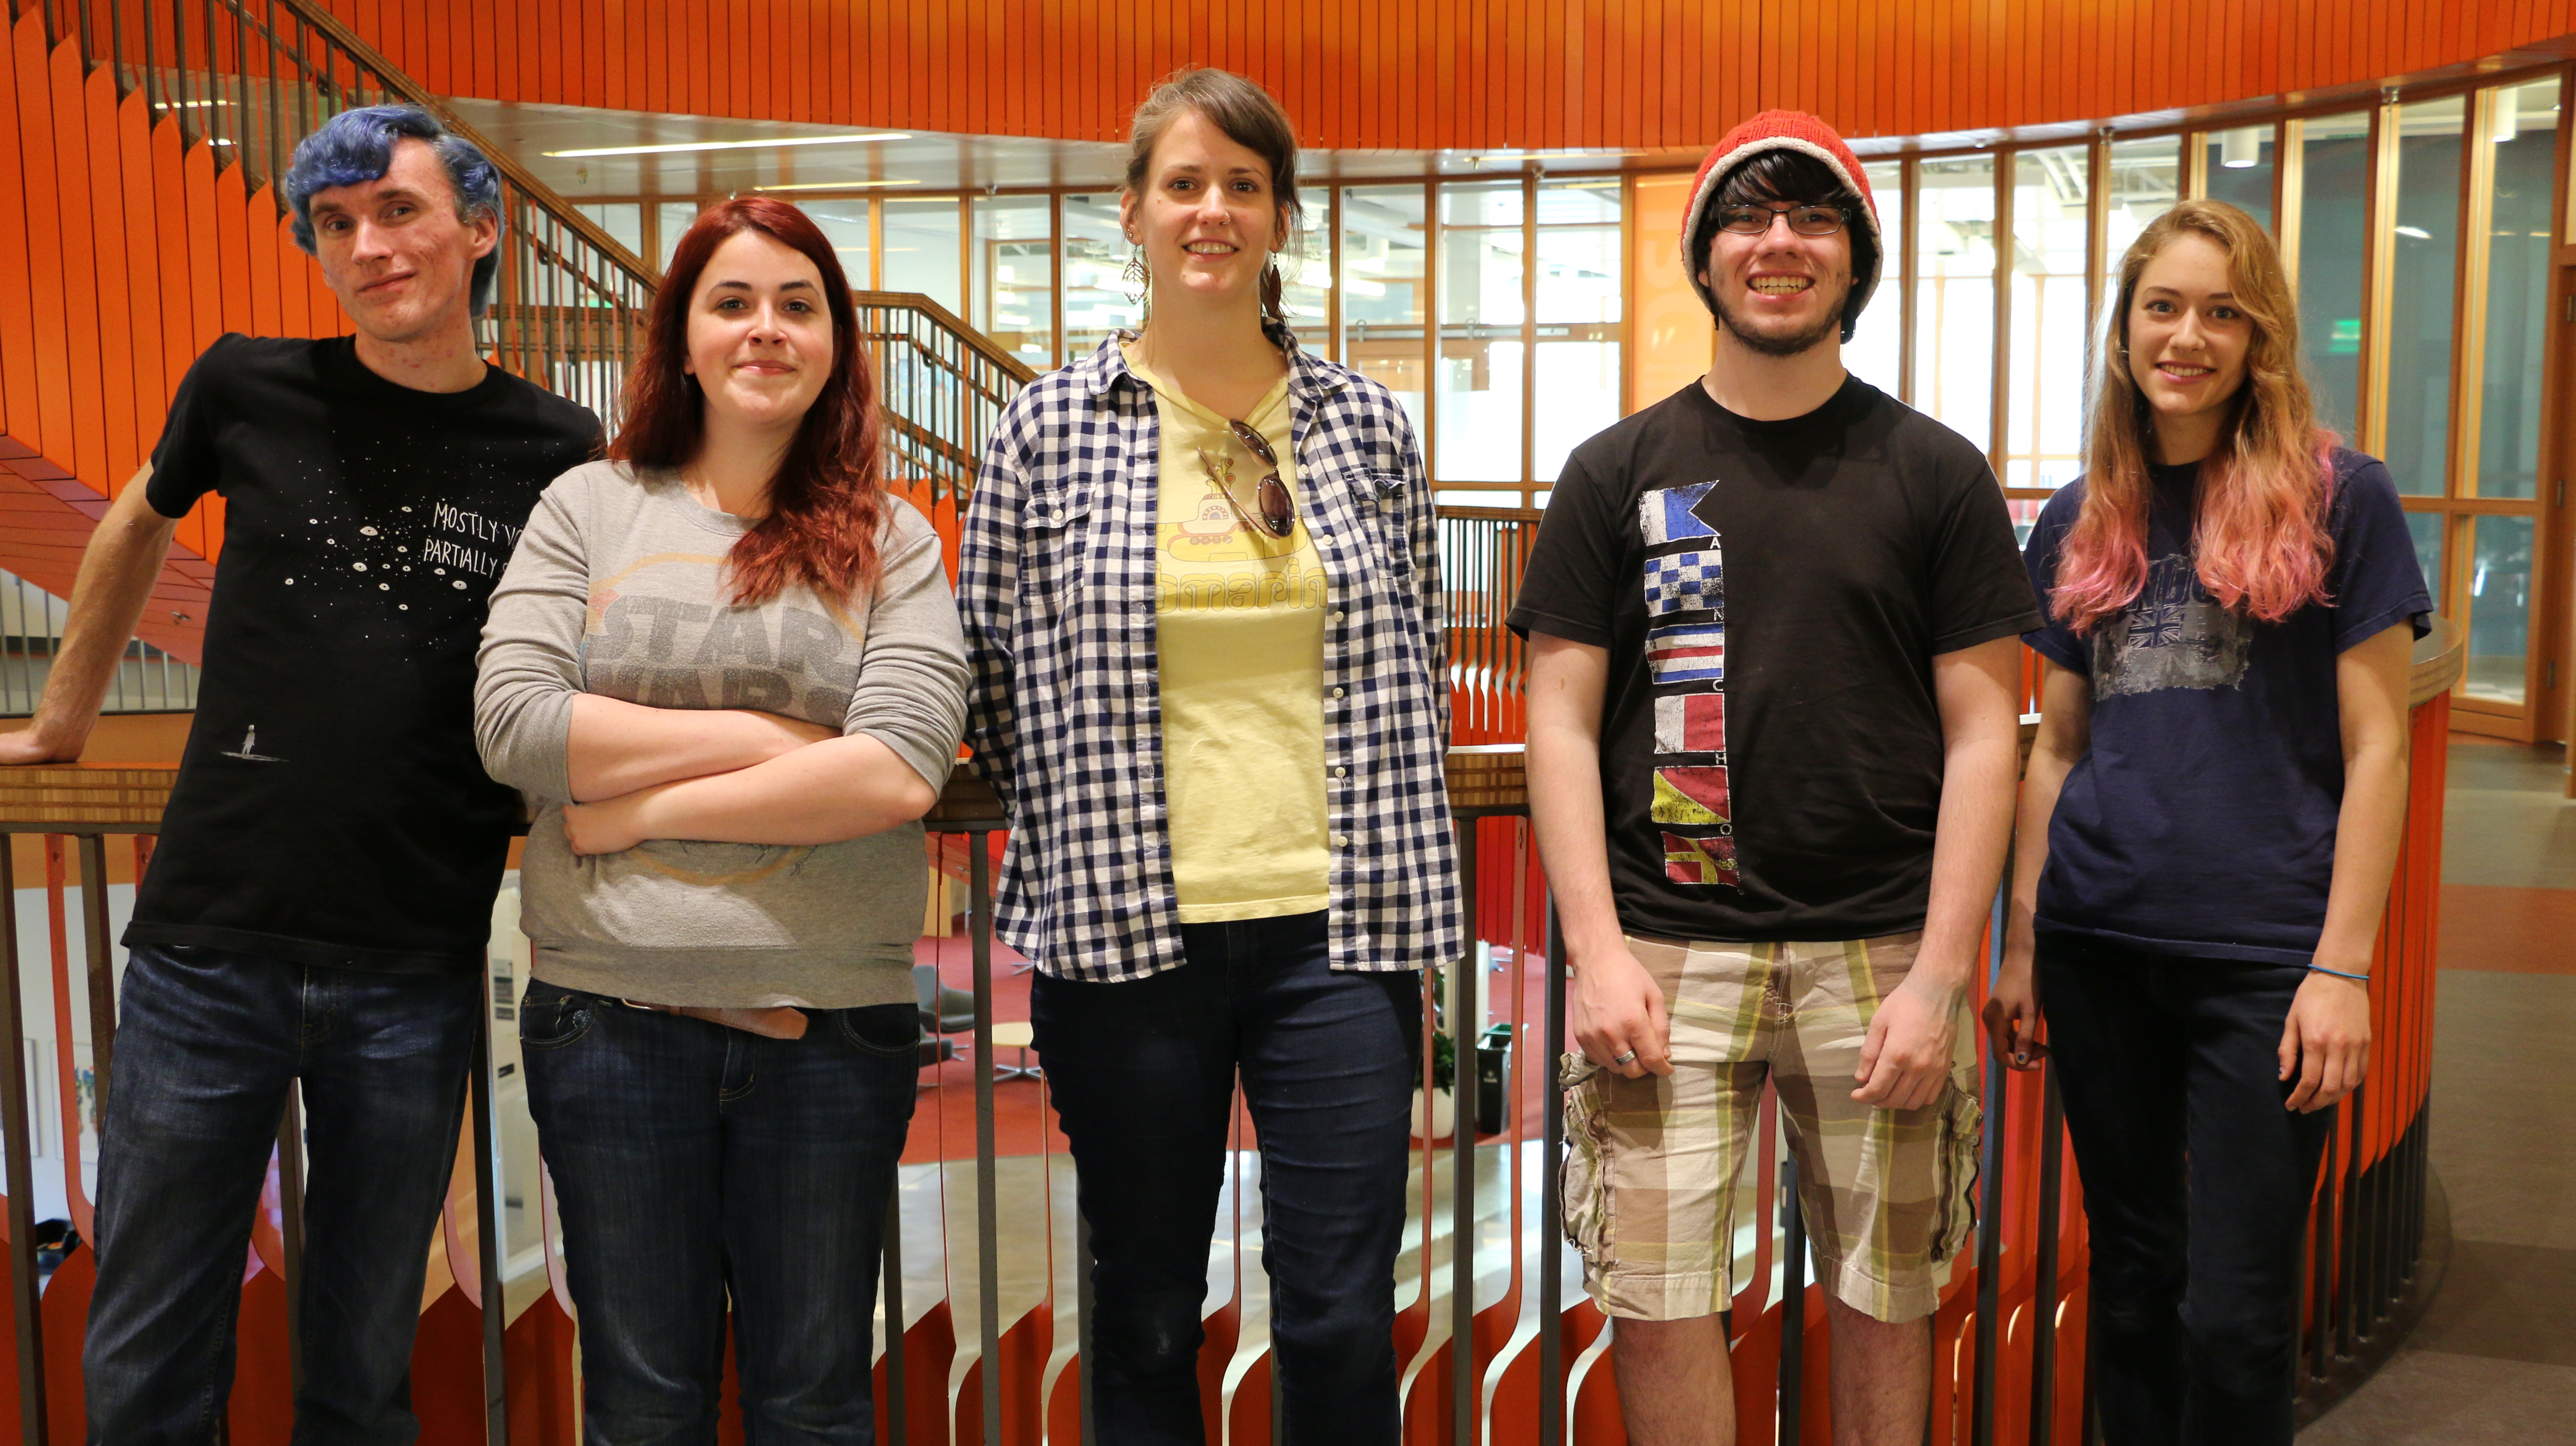 Members of the BeavsRecycle committee are pictured.